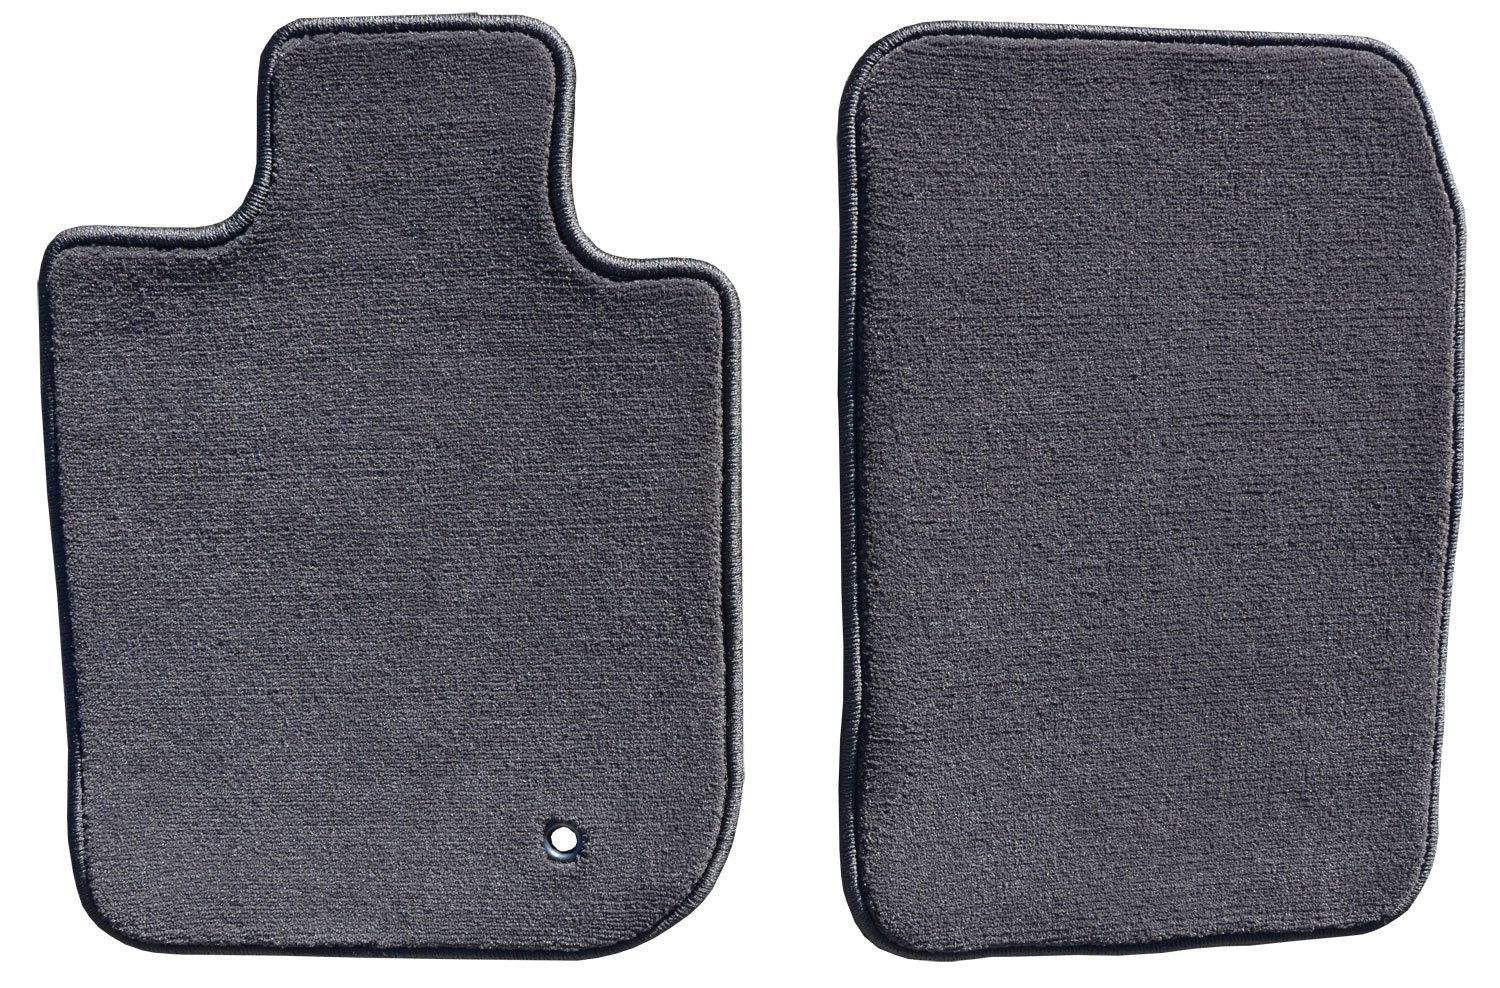 Connected Essentials Tailored Custom Fit Heavy Duty Automotive Carpet Boot Mat Boot Liner for Civic 2006-2008 Black with Grey Trim